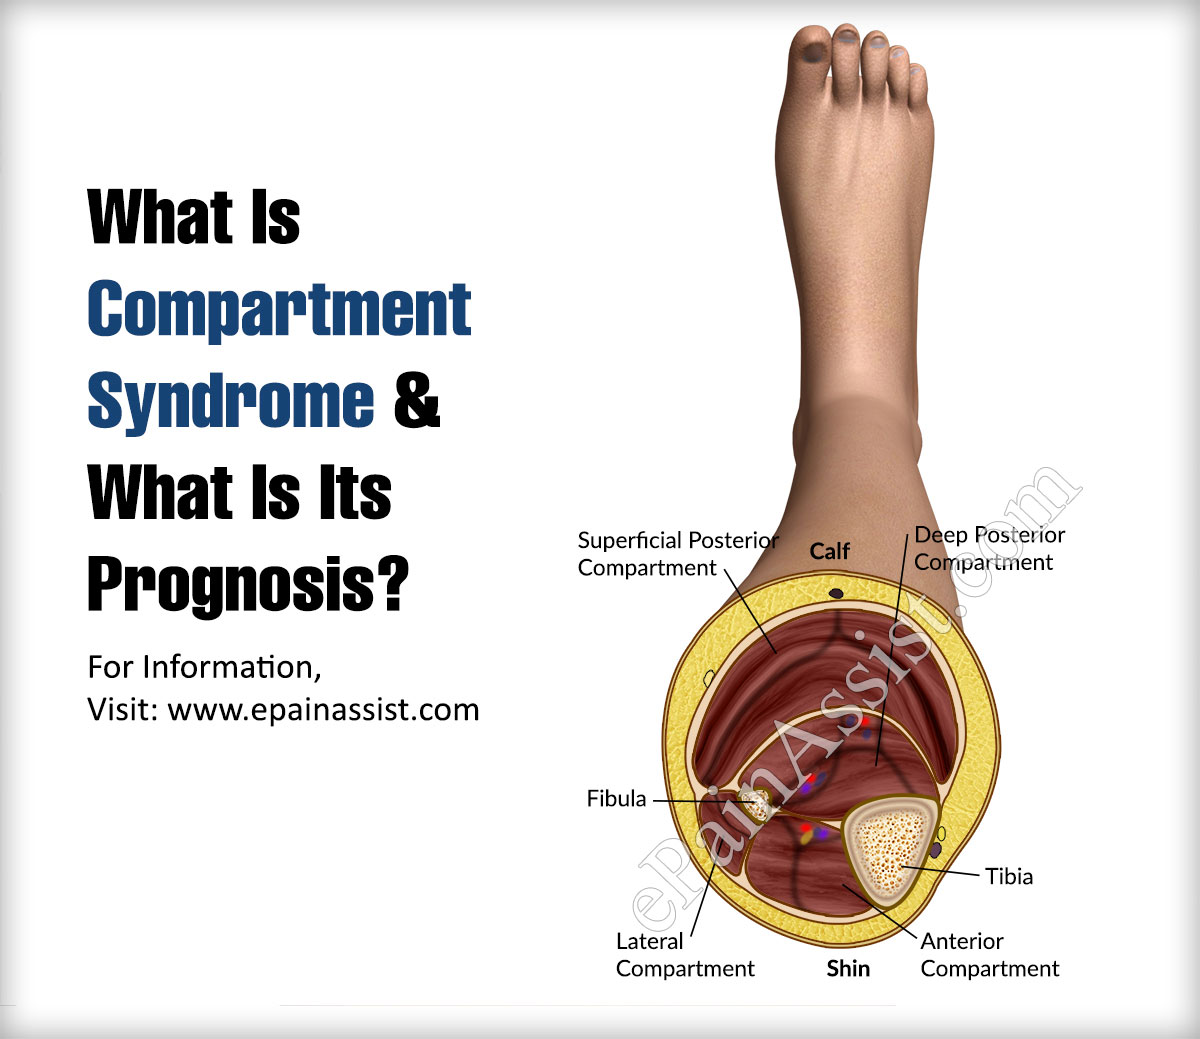 What Is Compartment Syndrome?